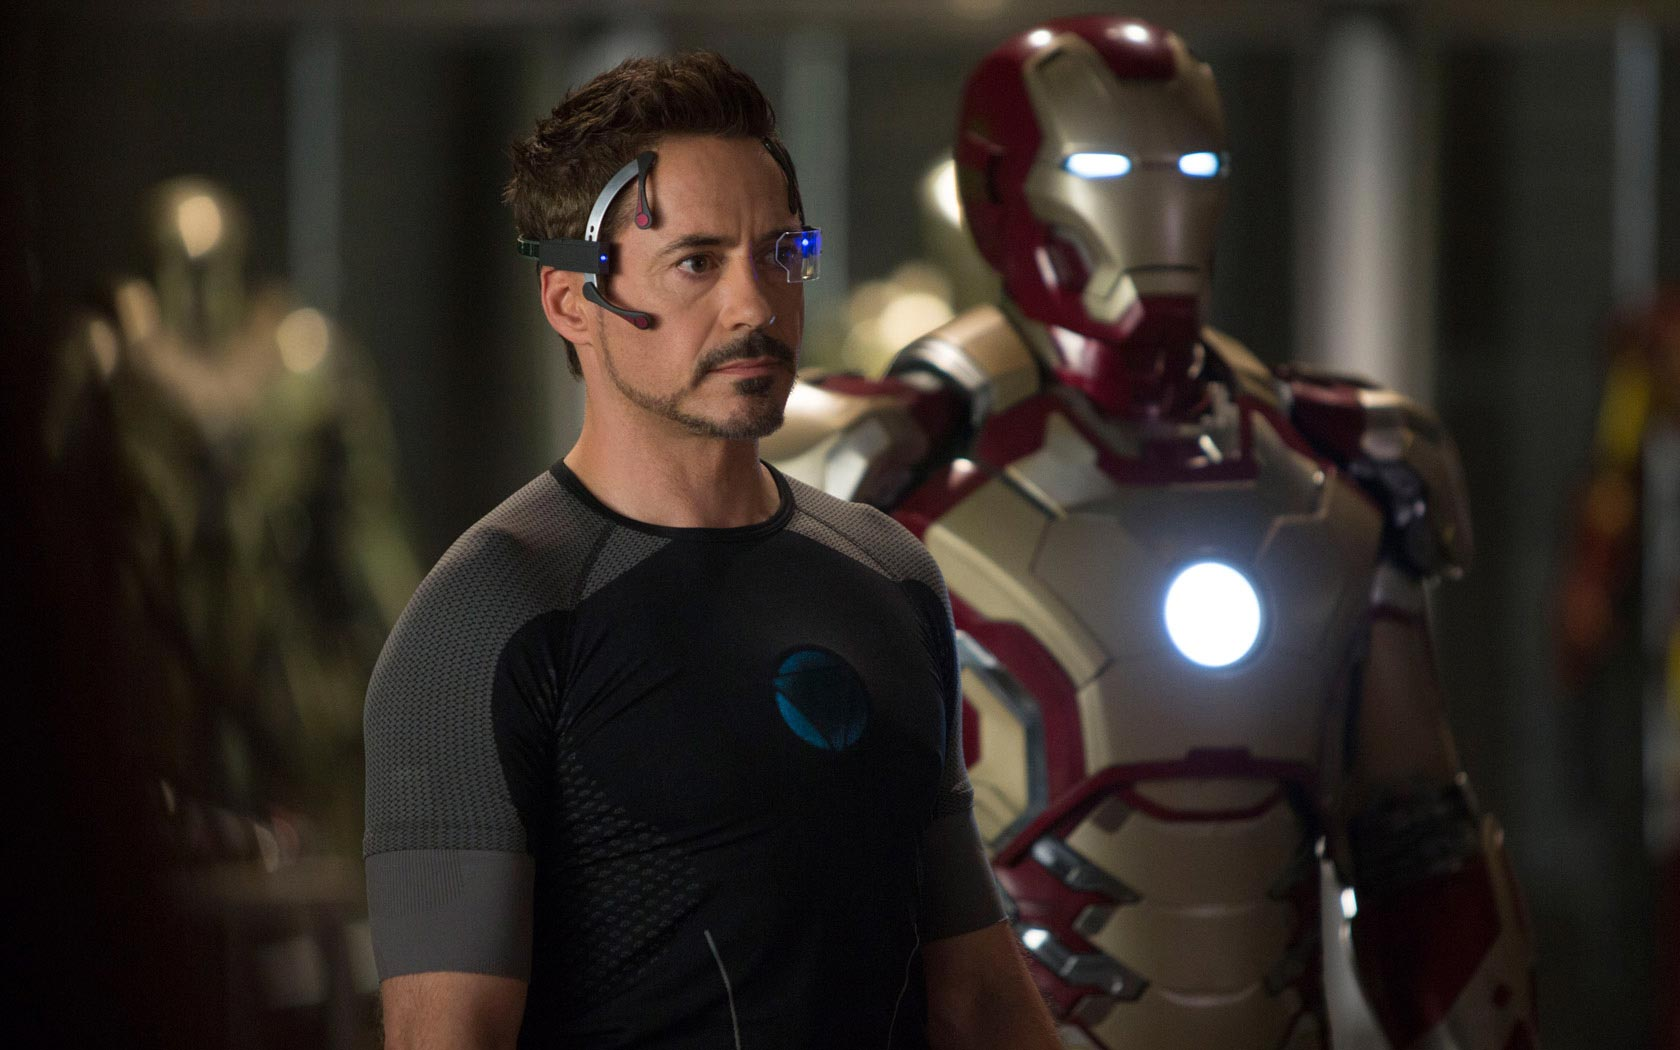 iron man wallpaper hd for android